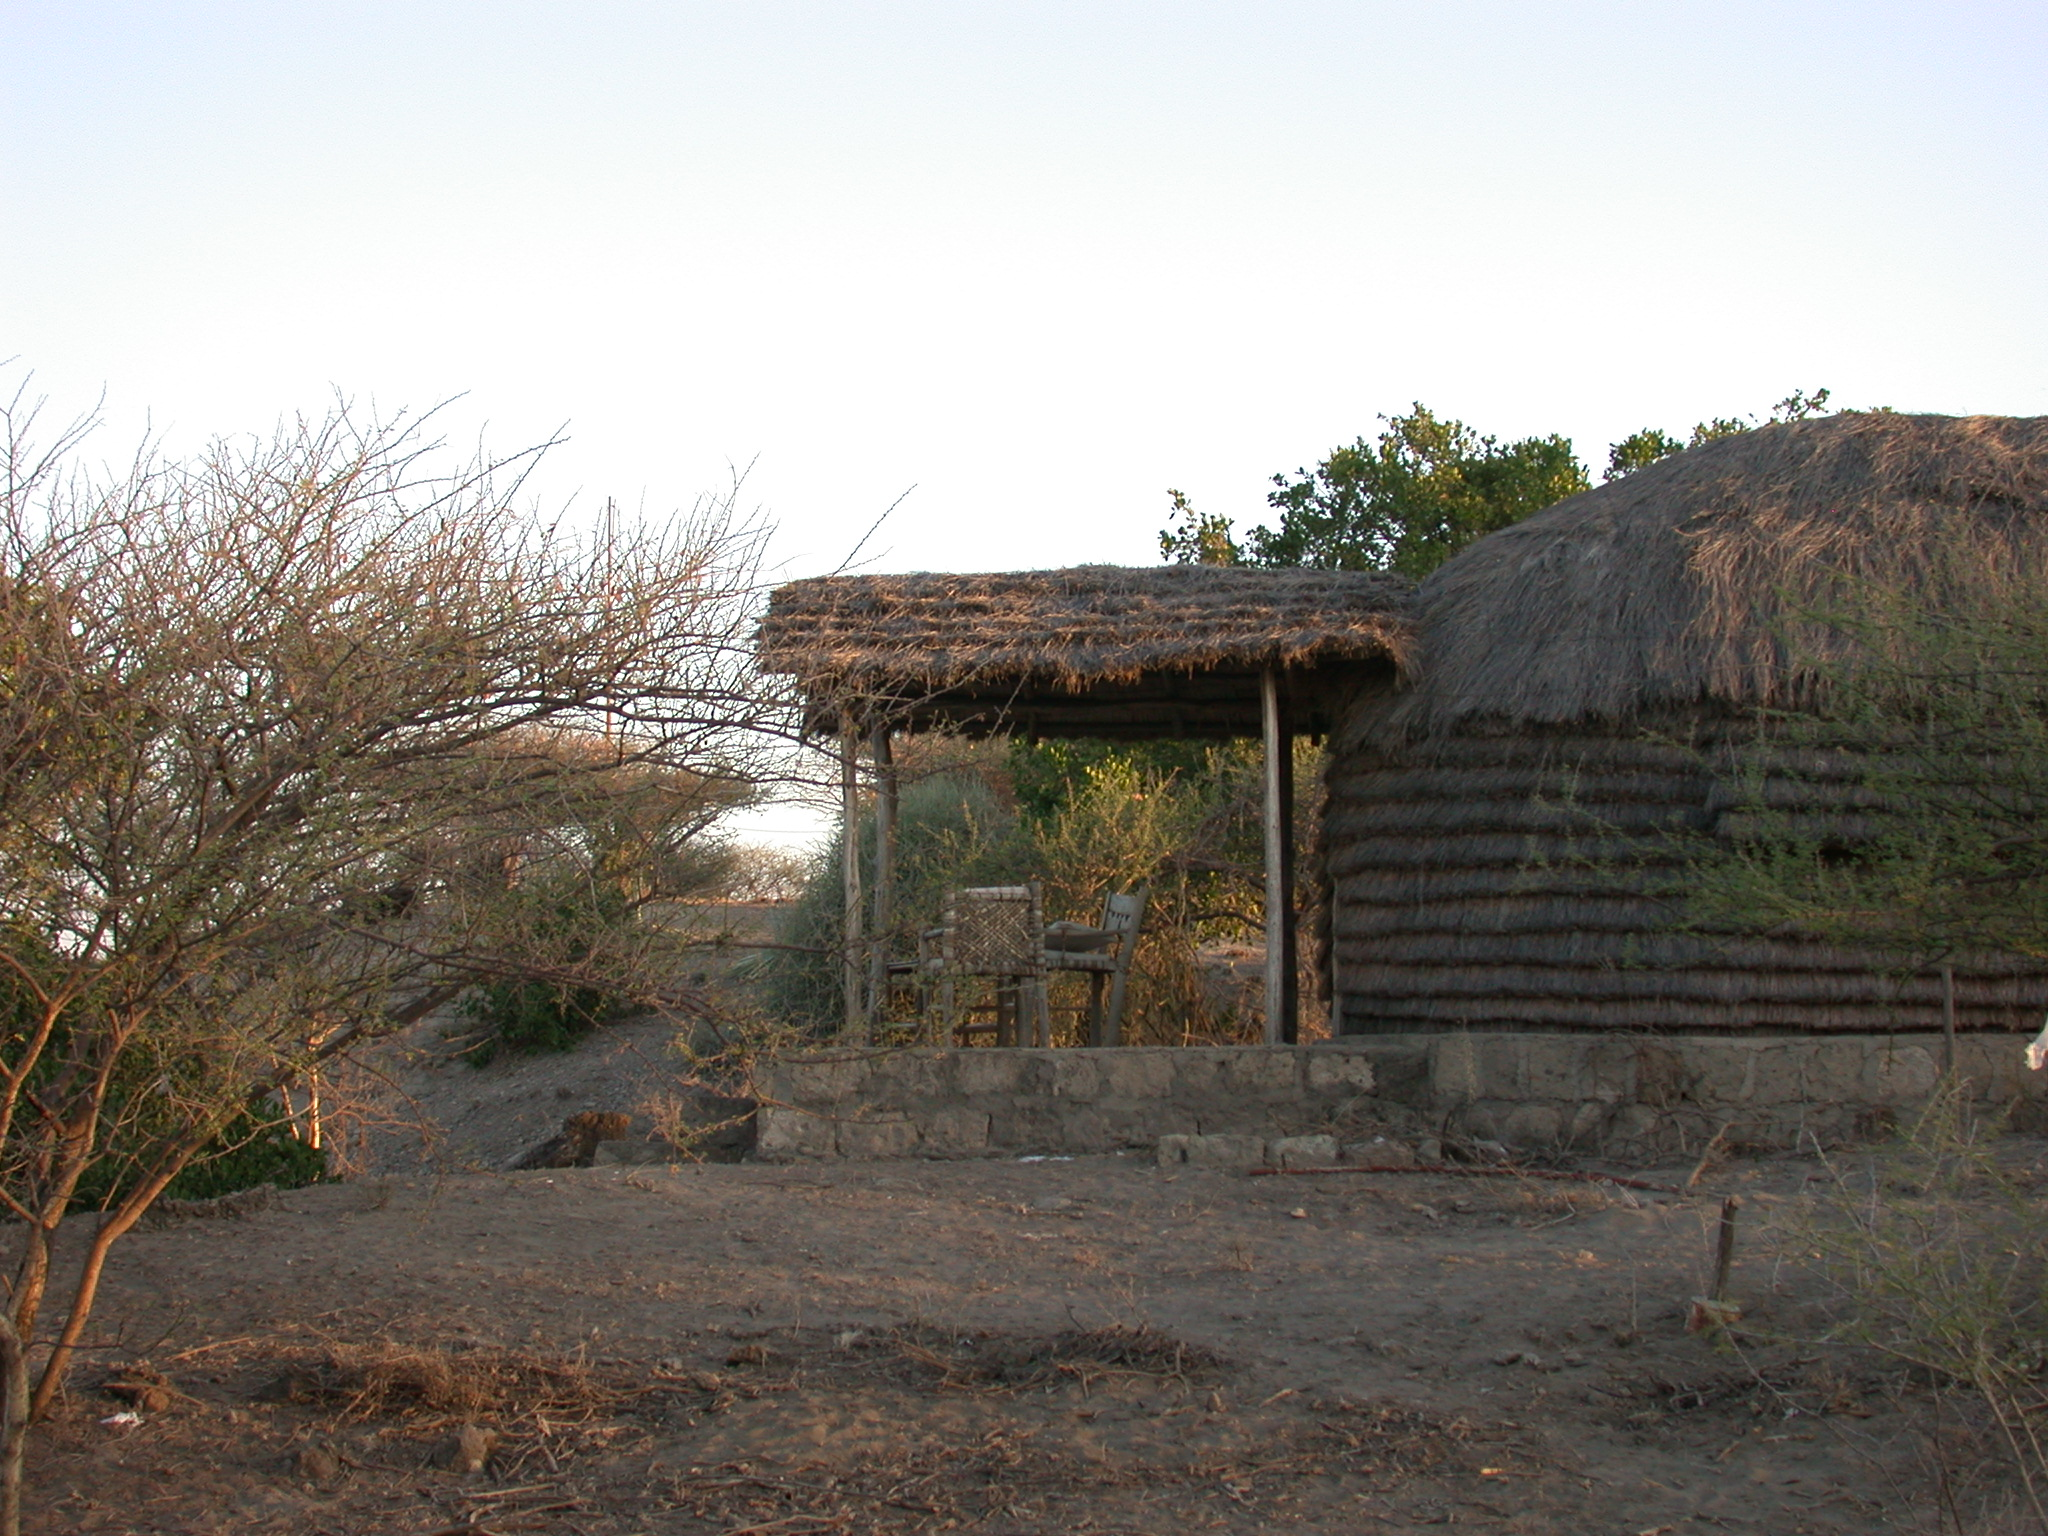 Tukul at Bilen Lodge, Afar, Awash, Ethiopia